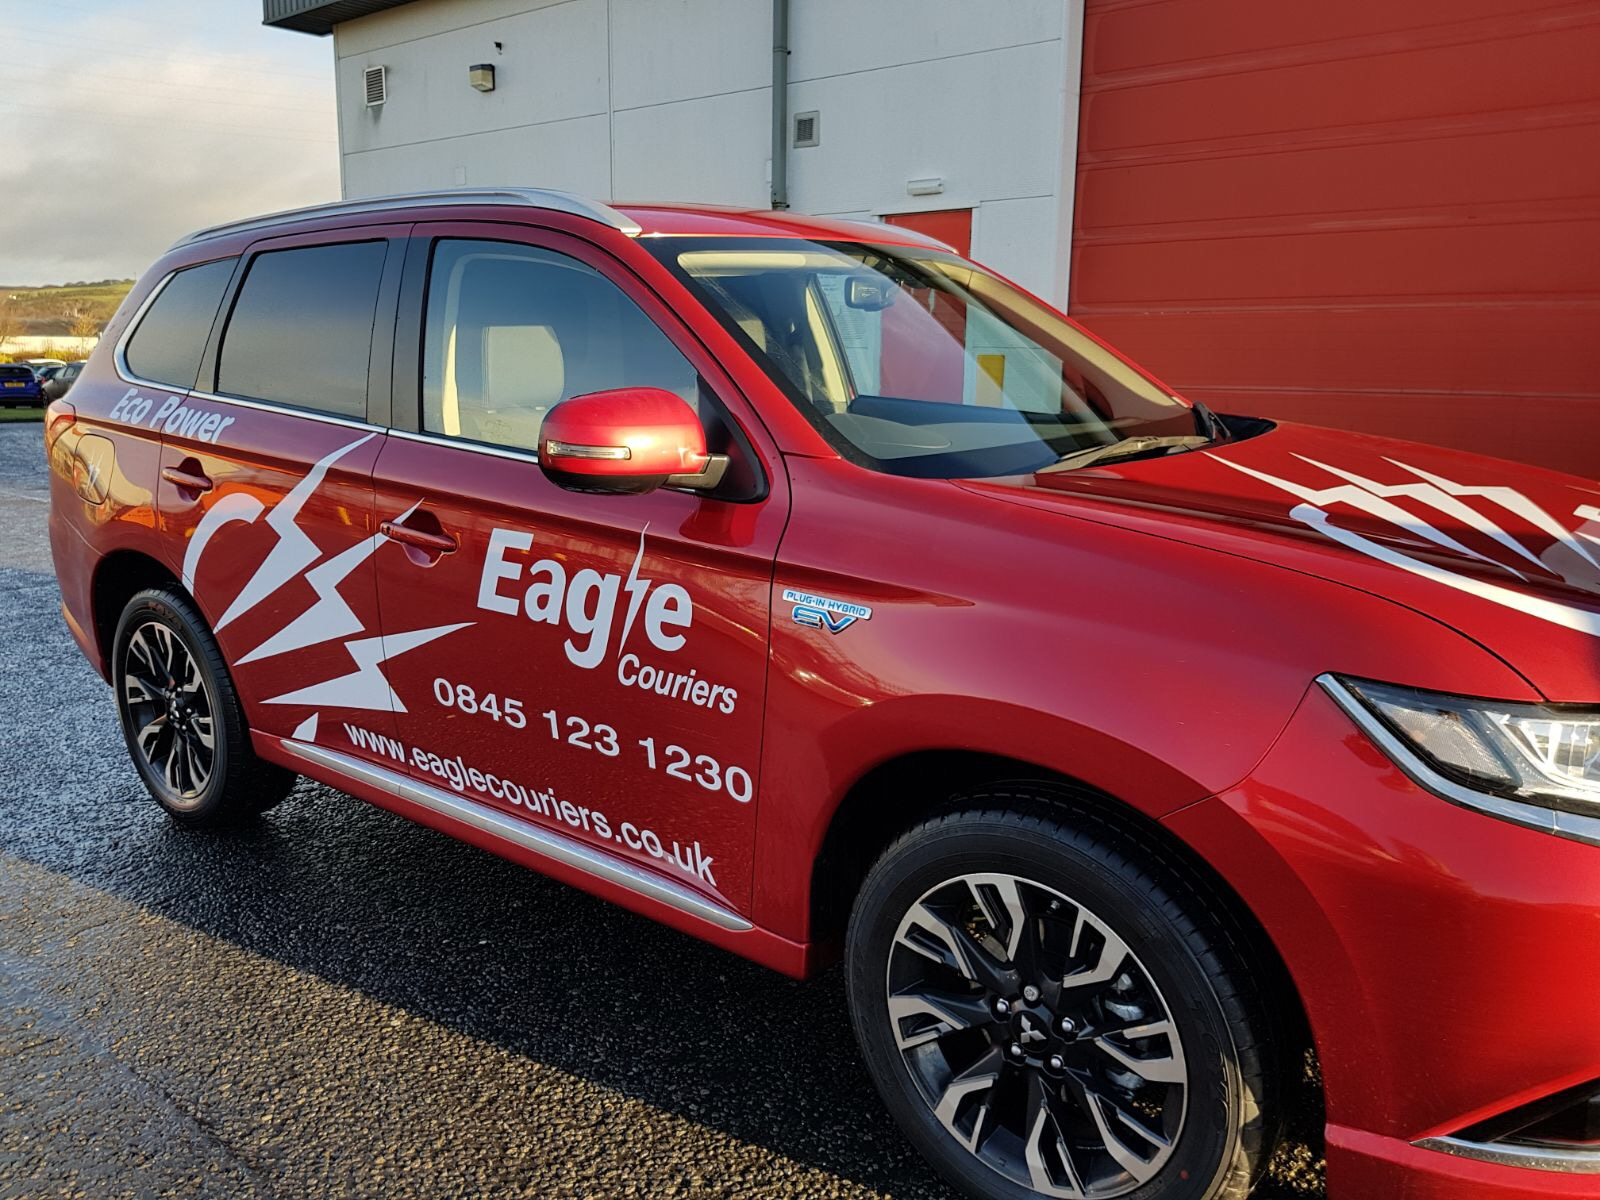 Eagle Courier's hybrid electric Mitsubishi vehicle